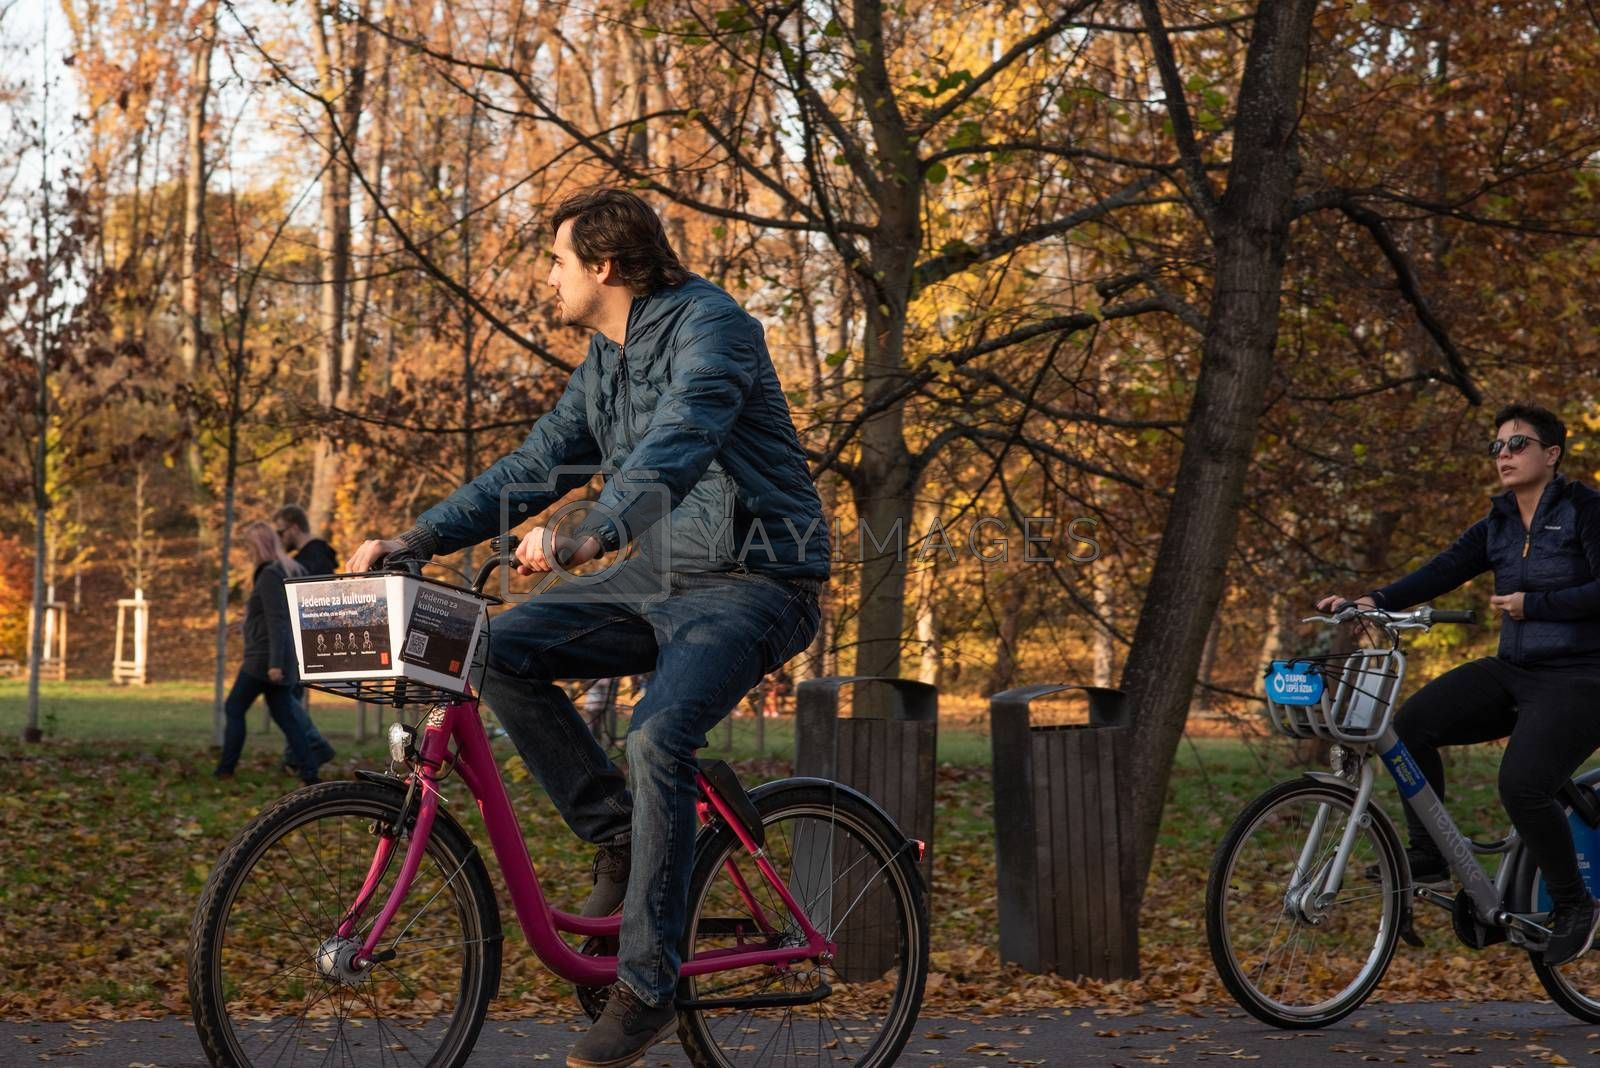 11/14/2020. Park Stromovka. Prague. Czech Republic. A man is riding his bike at the park on a winter day.